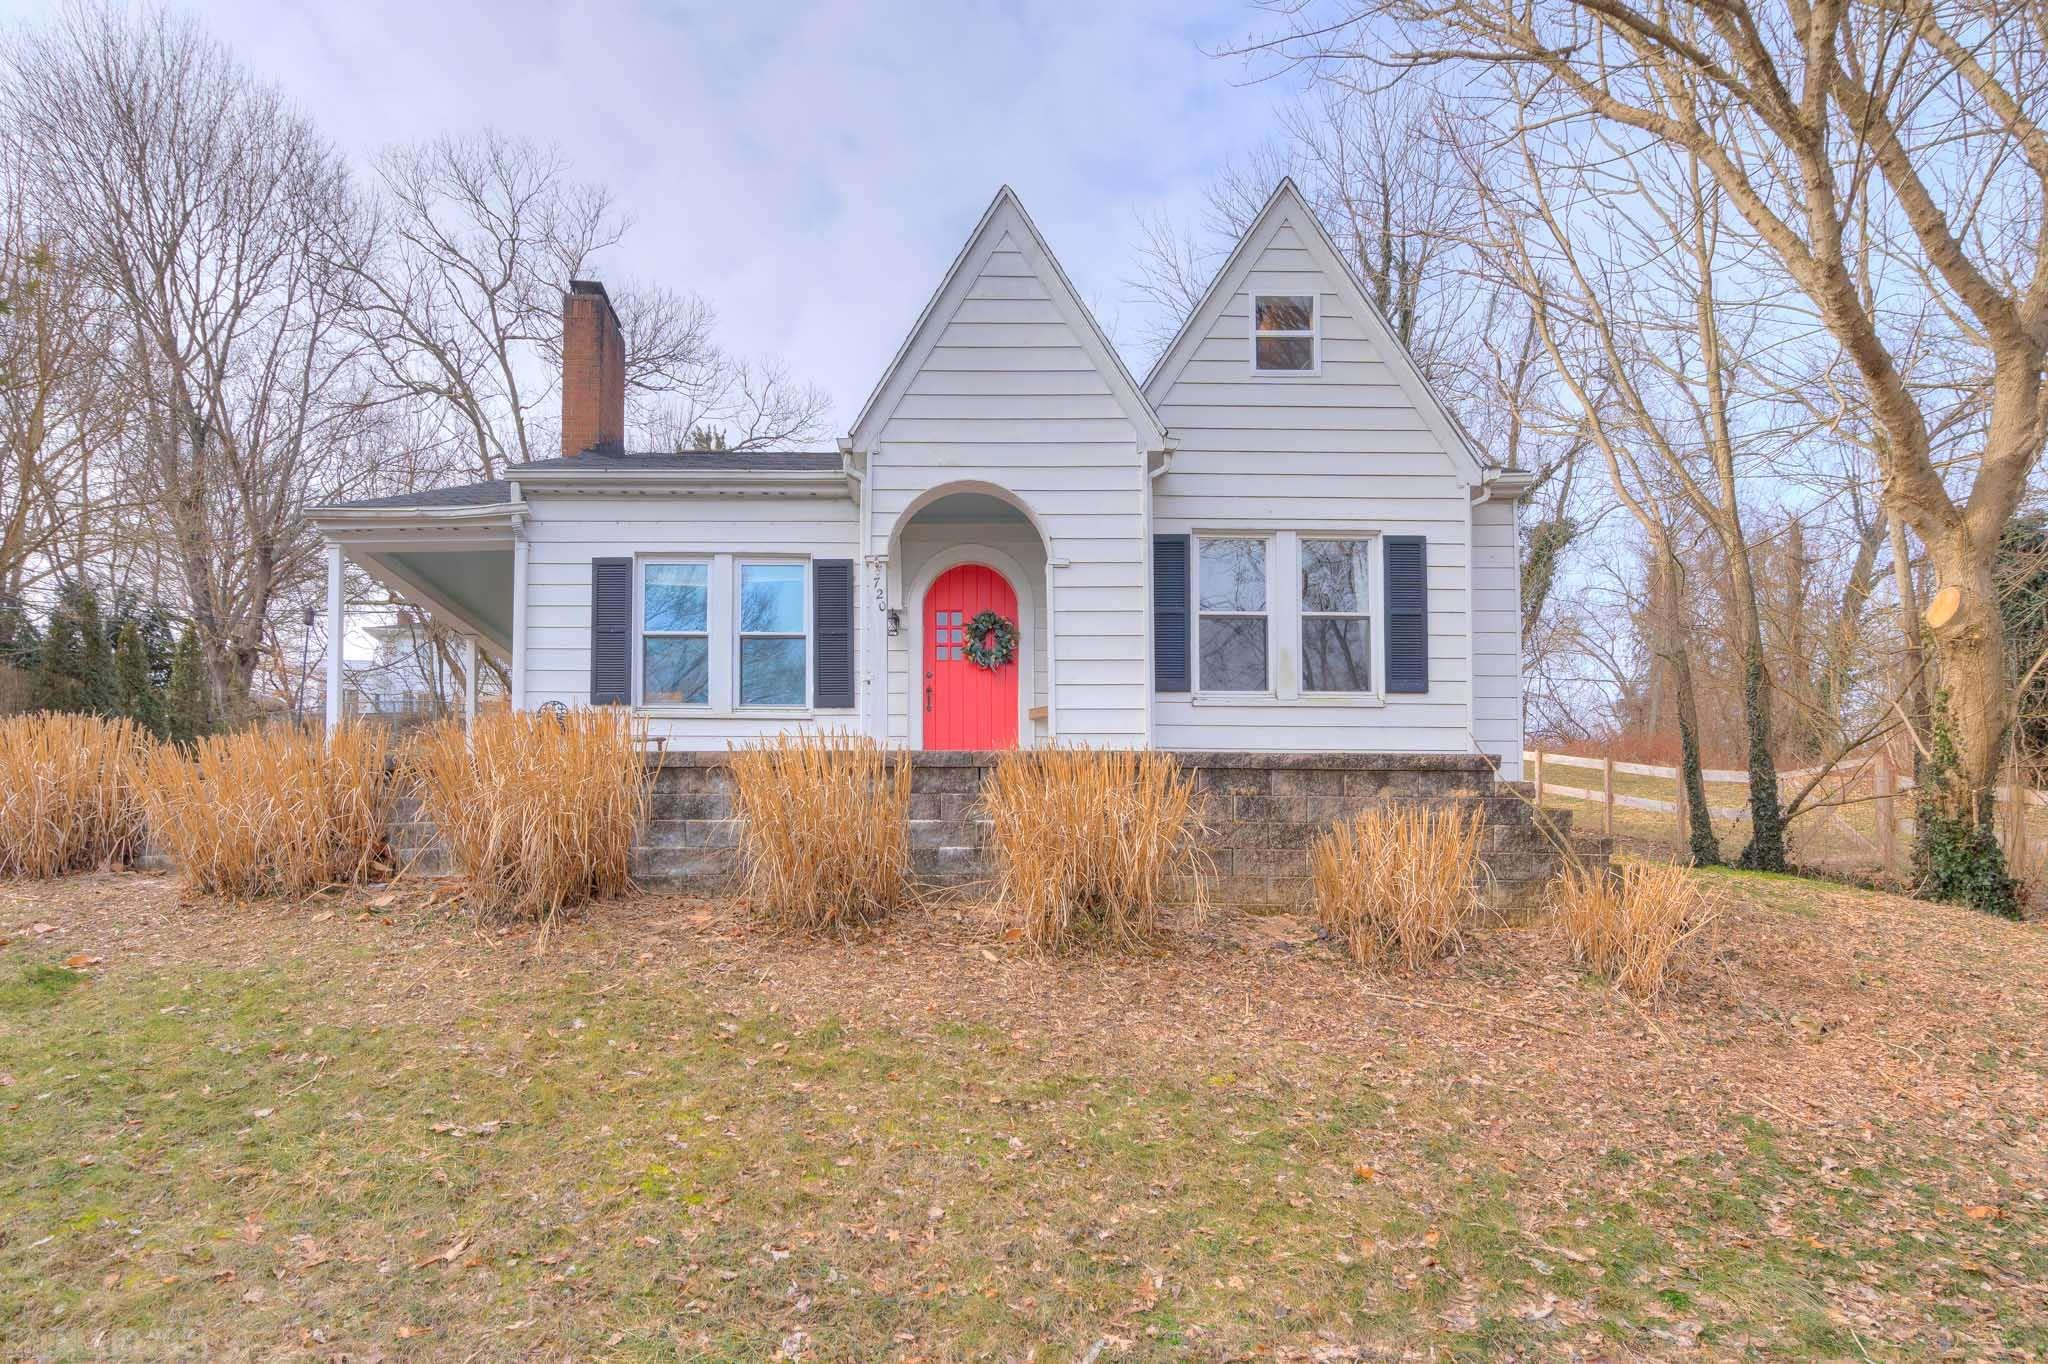 This Radford home has so much character and has been well loved!! Walking distance to Radford University, beautiful views, and lots of updates! Enter via the side door on the wrap around patio. Living room has brand new gas log fireplace, built in bookcases, and lots of windows. Curved doorframes and original, fully functional hardware lend to the character of this home! Walk through to a formal dining area, updated kitchen, and two bedrooms. Fresh paint, hardwood floors, insulated windows throughout. So much light! Bedrooms are bright and spacious. Head upstairs for a real treat--fully remodeled master bedroom space with a private half bath, large closet space, and reading nook. New vinyl plank floors, fixtures, windows, and paint. Partial basement for laundry, workbench, and storage. New hot water heater, new fence, new thermostat, and new gas logs. Roof in Nov 2018.  A sweet space, close to schools, local shops and restaurants, this is a must see!